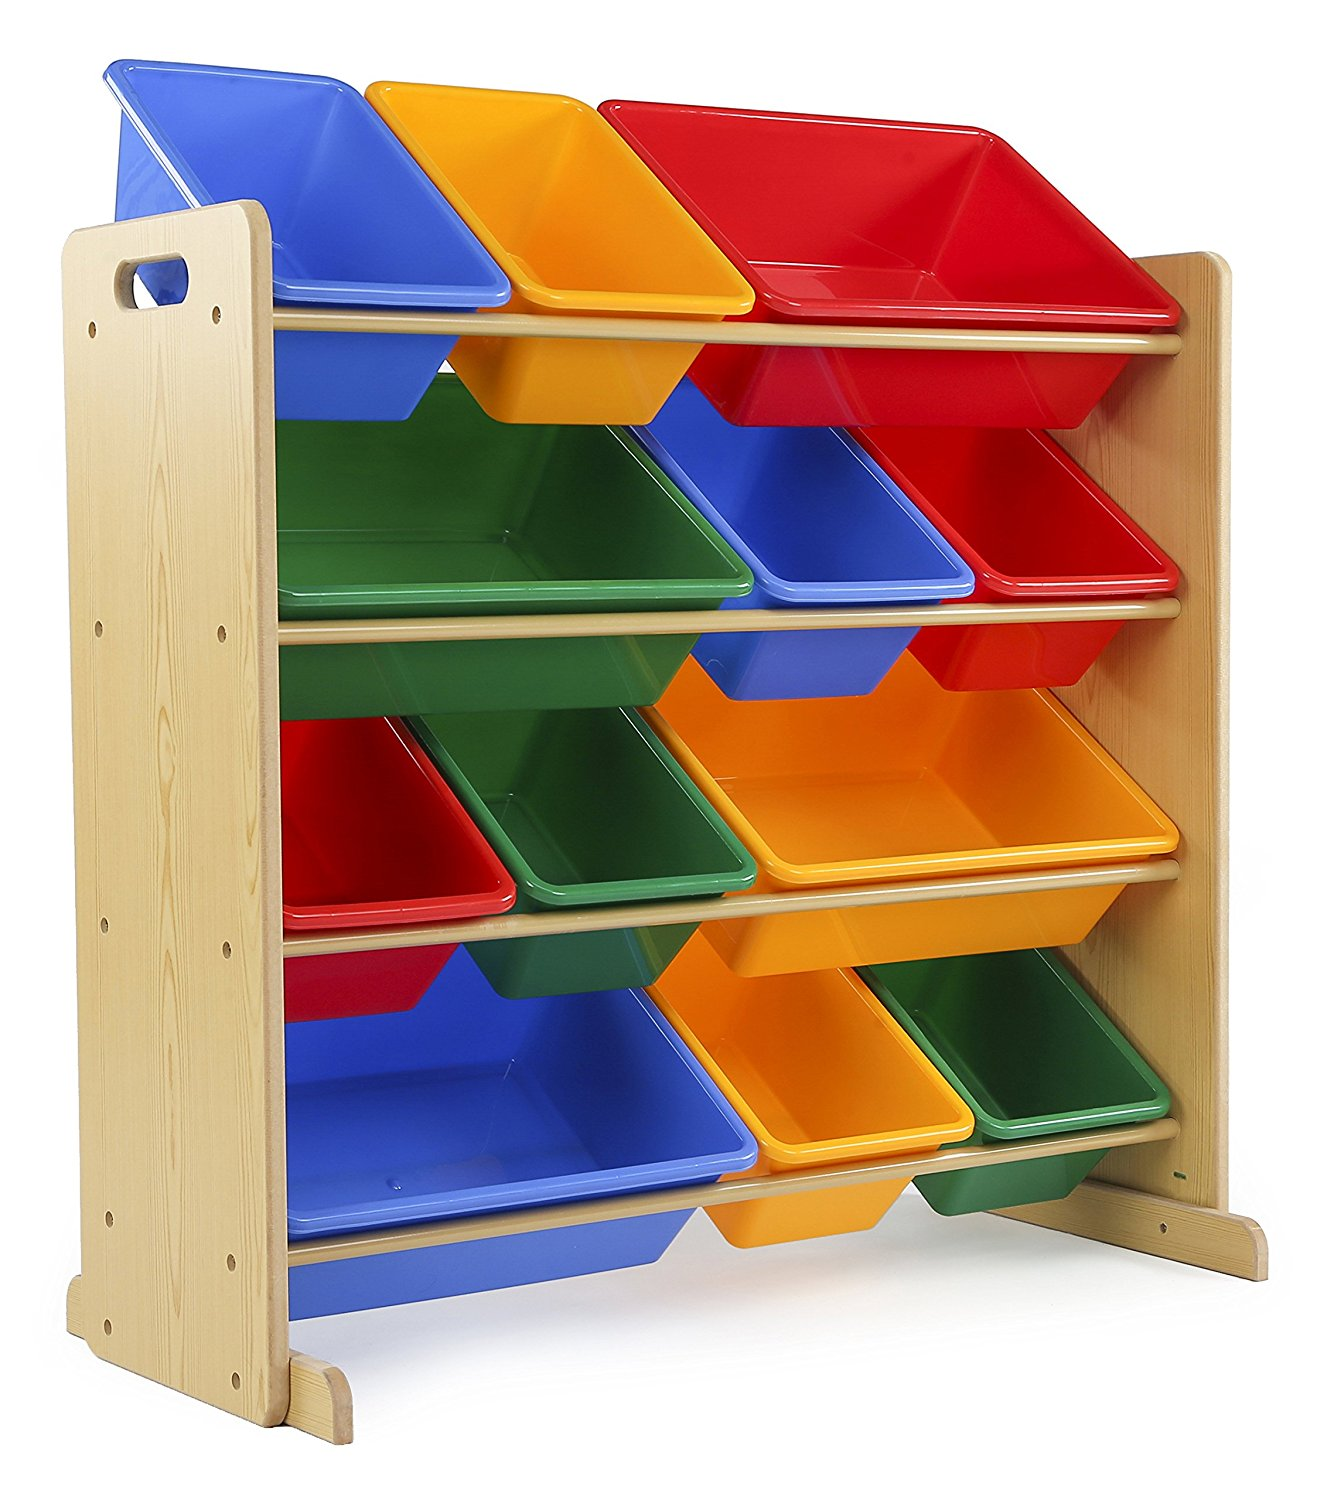 Amazon Best Seller Tot Tutors Kids Toy Storage Organizer With 12